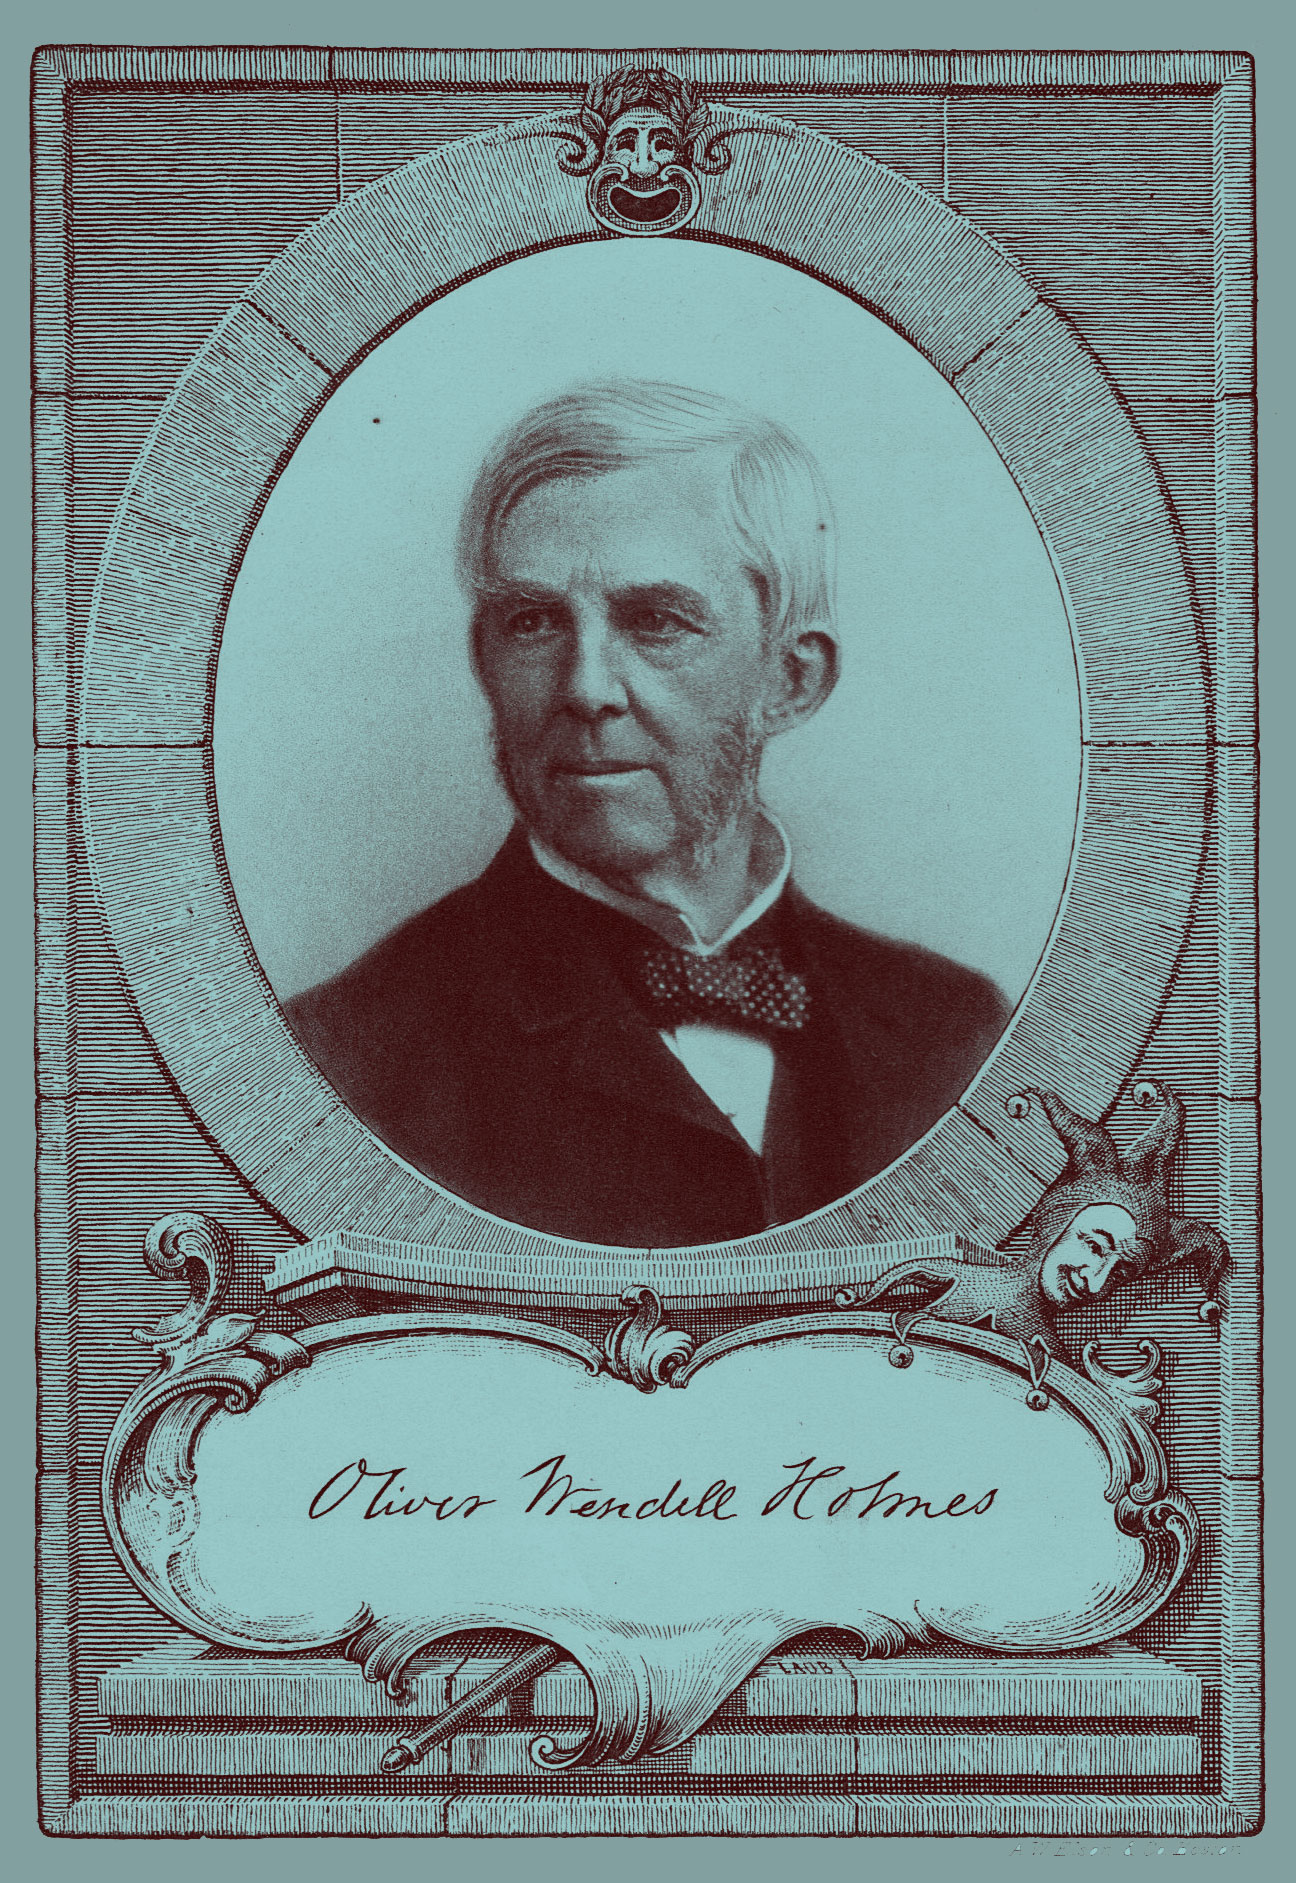 Portrait of Oliver Wendell Holmes, engraving, with a copy of his signature at the bottom